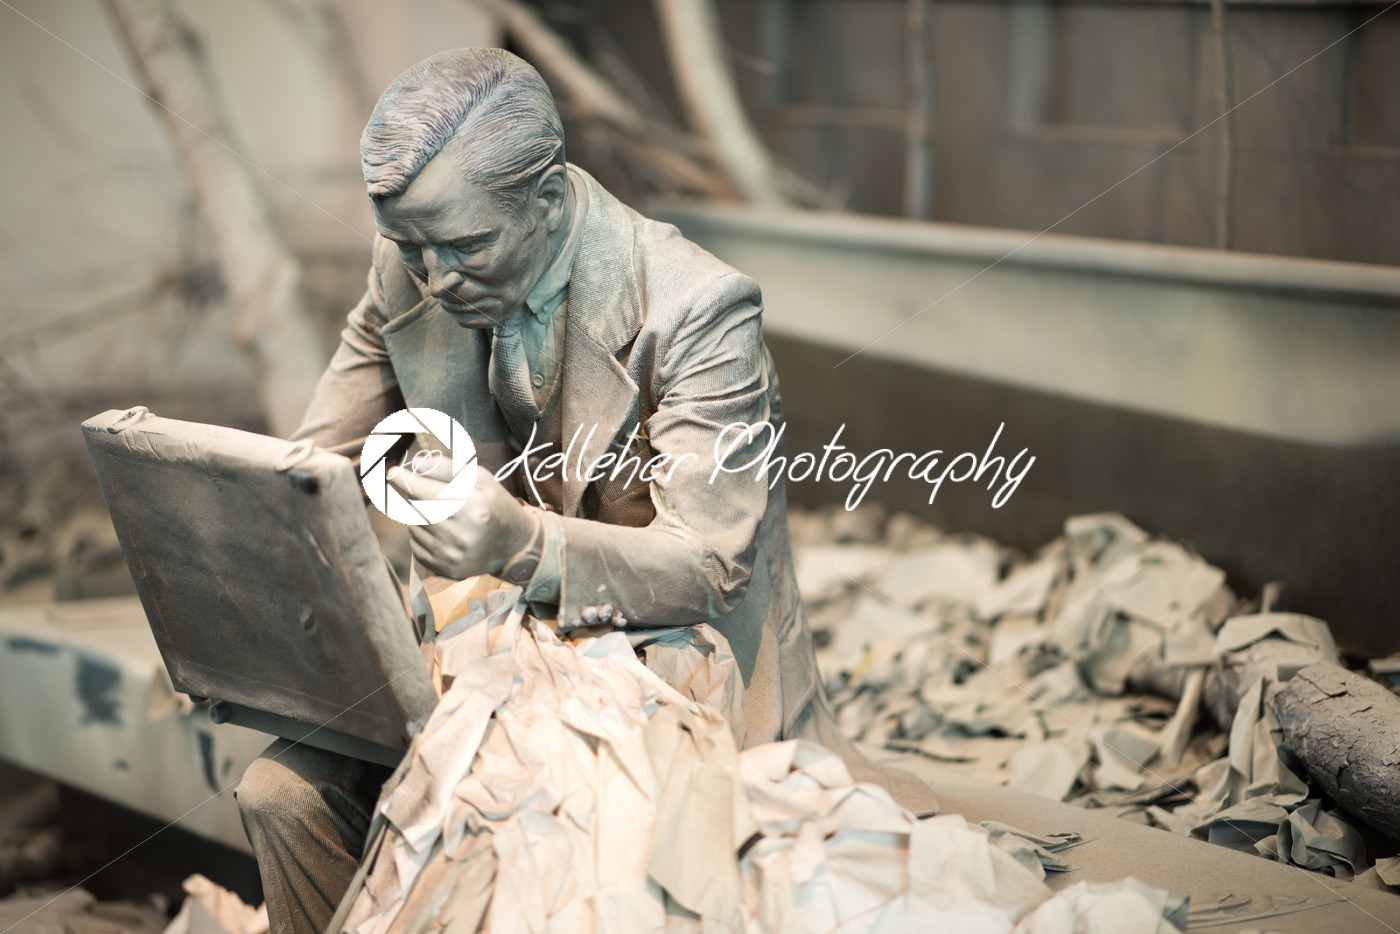 TRENTON, NJ – JUNE 17, 2017: Business man sitting down with breifcase at the Grounds for Sculpture - Kelleher Photography Store